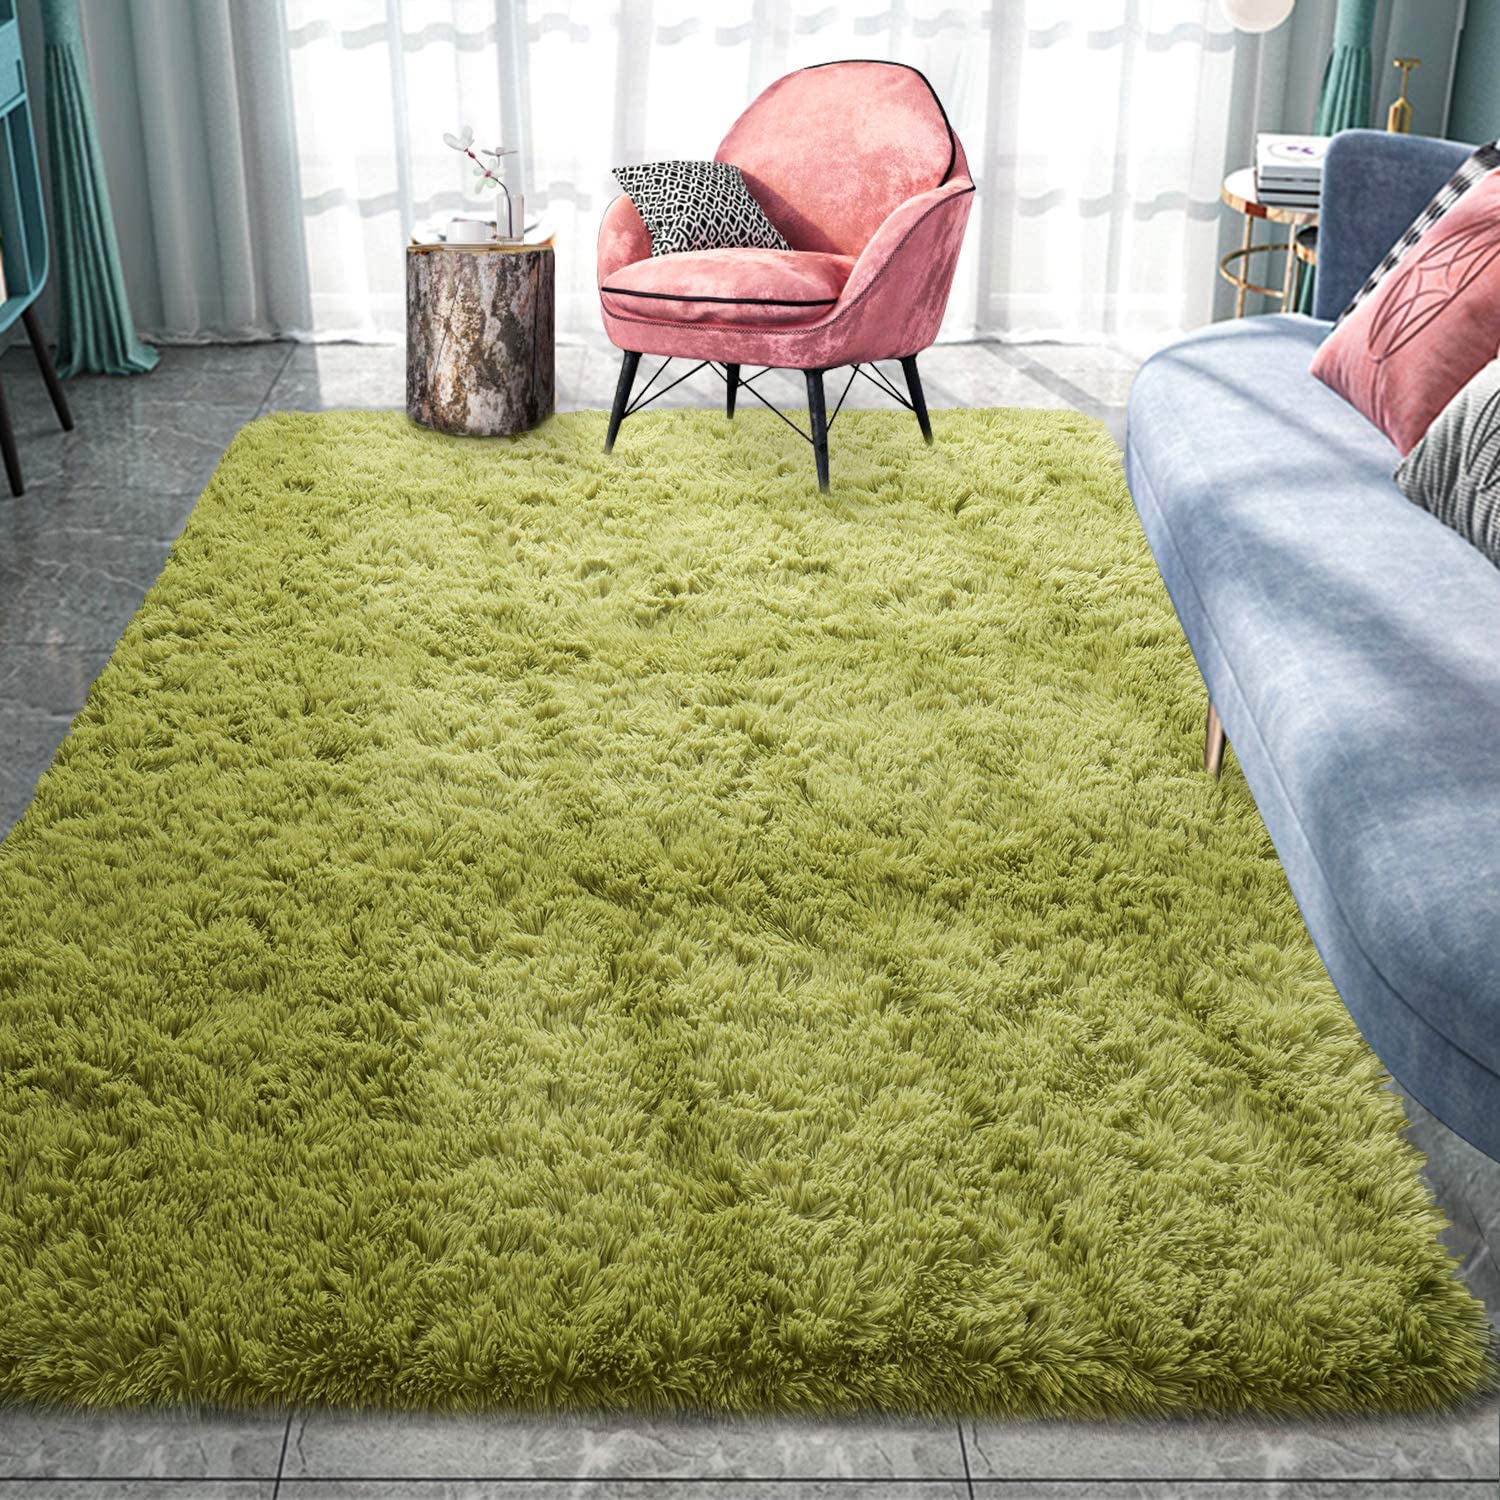 Amazon Com Pacapet Fluffy Area Rugs Green Shag Rug For Bedroom Plush Furry Rugs For Living Room Fuzzy Carpet For Kid S Room Nursery Home Decor 4 X 5 9 Feet Home Kitchen